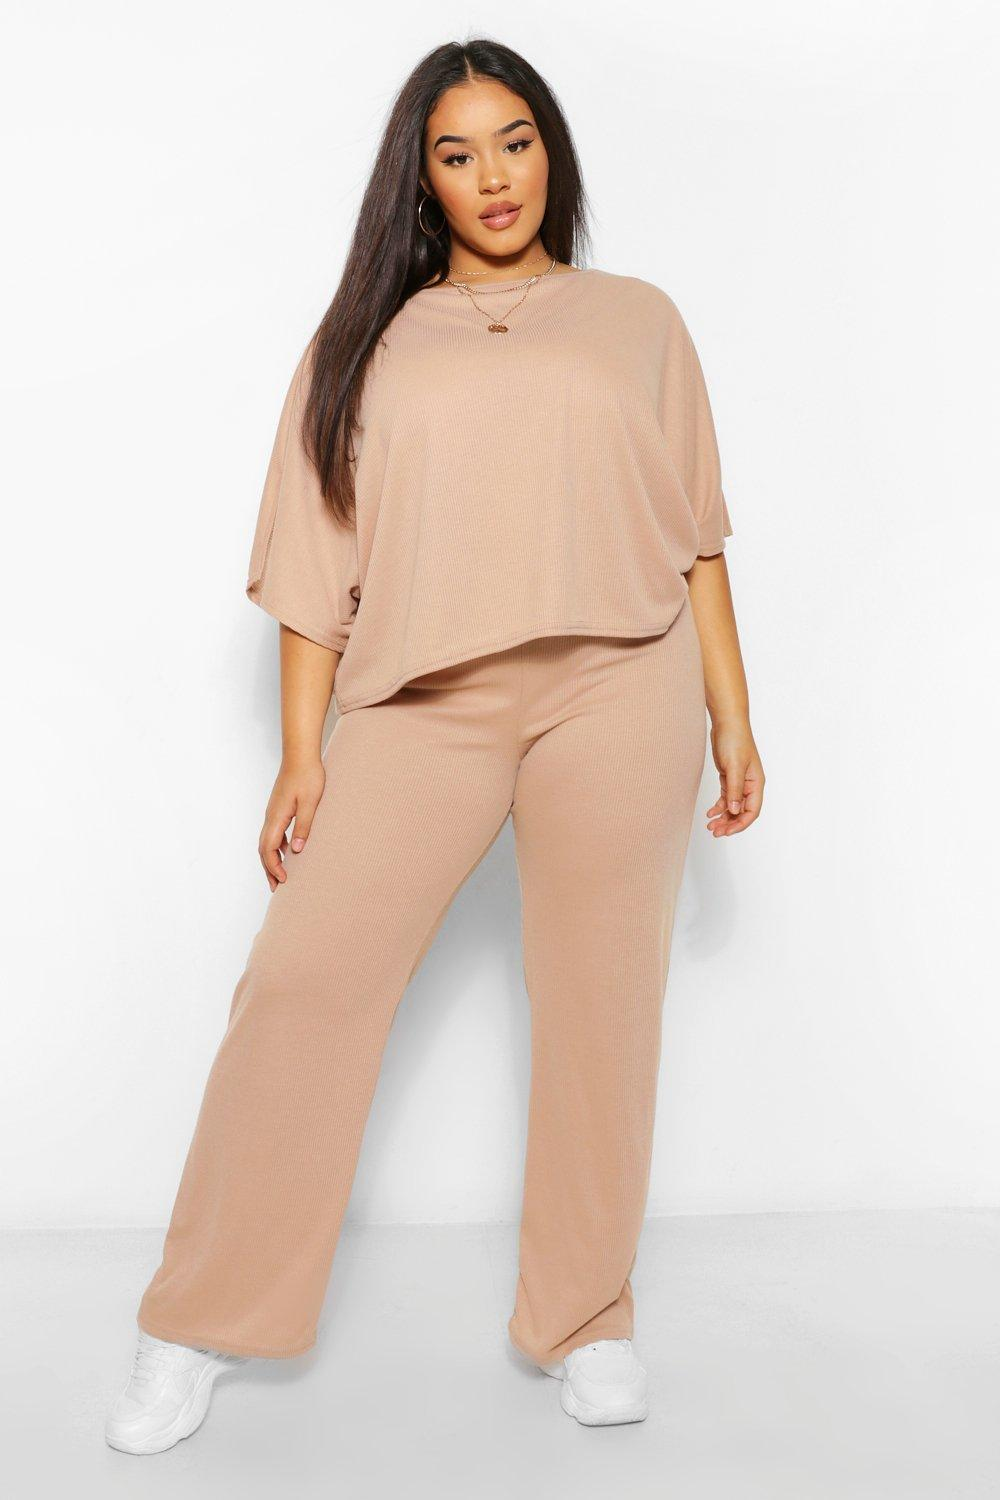 Plus Split Sleeve and Wide Leg Trousers Lounge Set 8